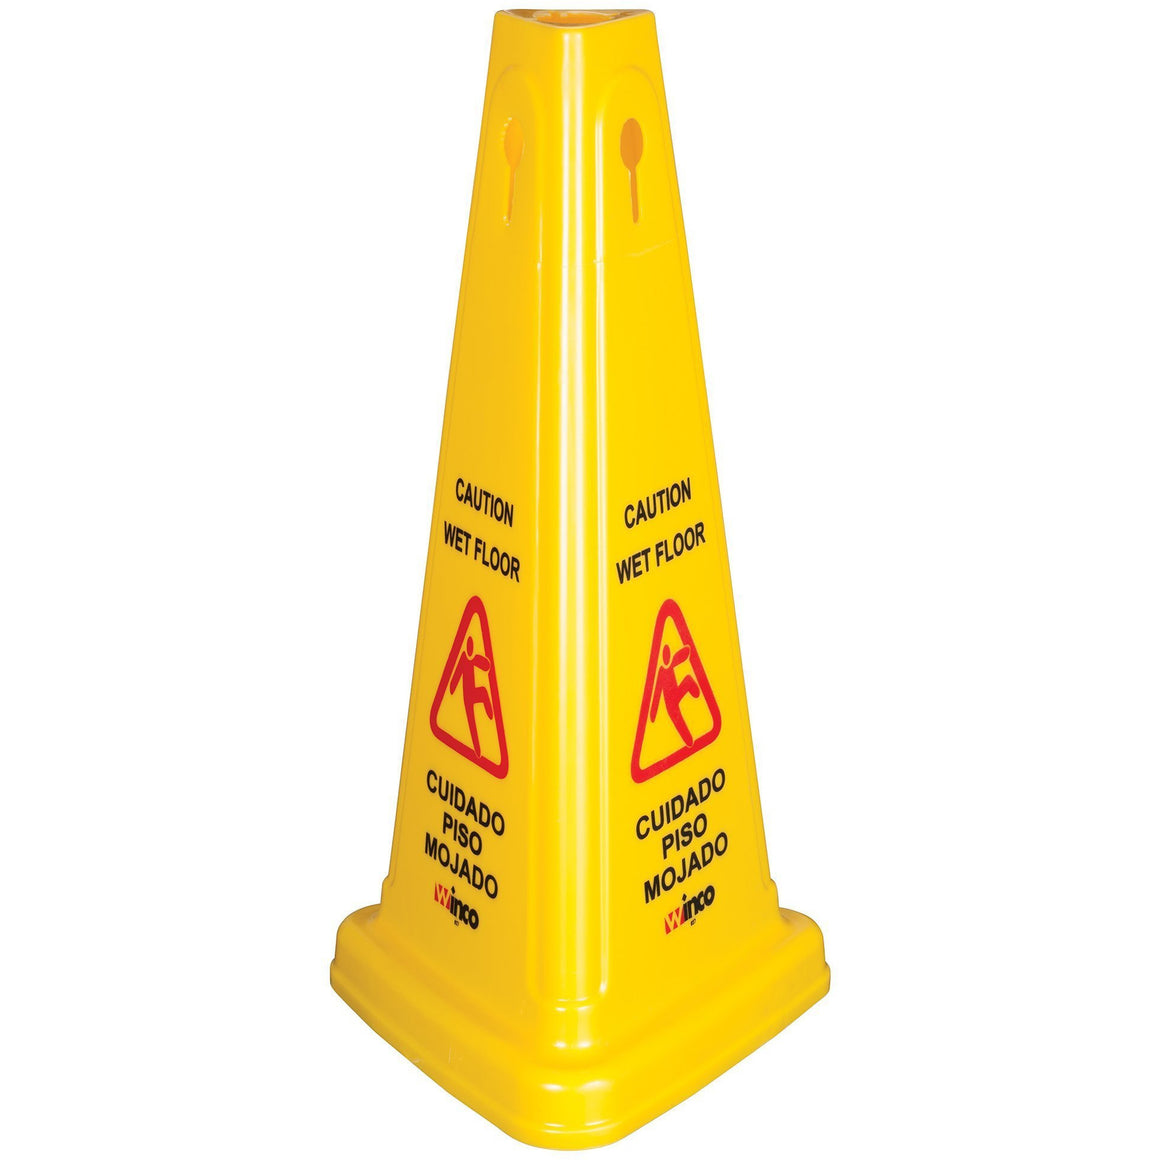 Winco - WCS-27T - Wet Floor Caution Sign, Cone-shaped, Yellow - Janitorial